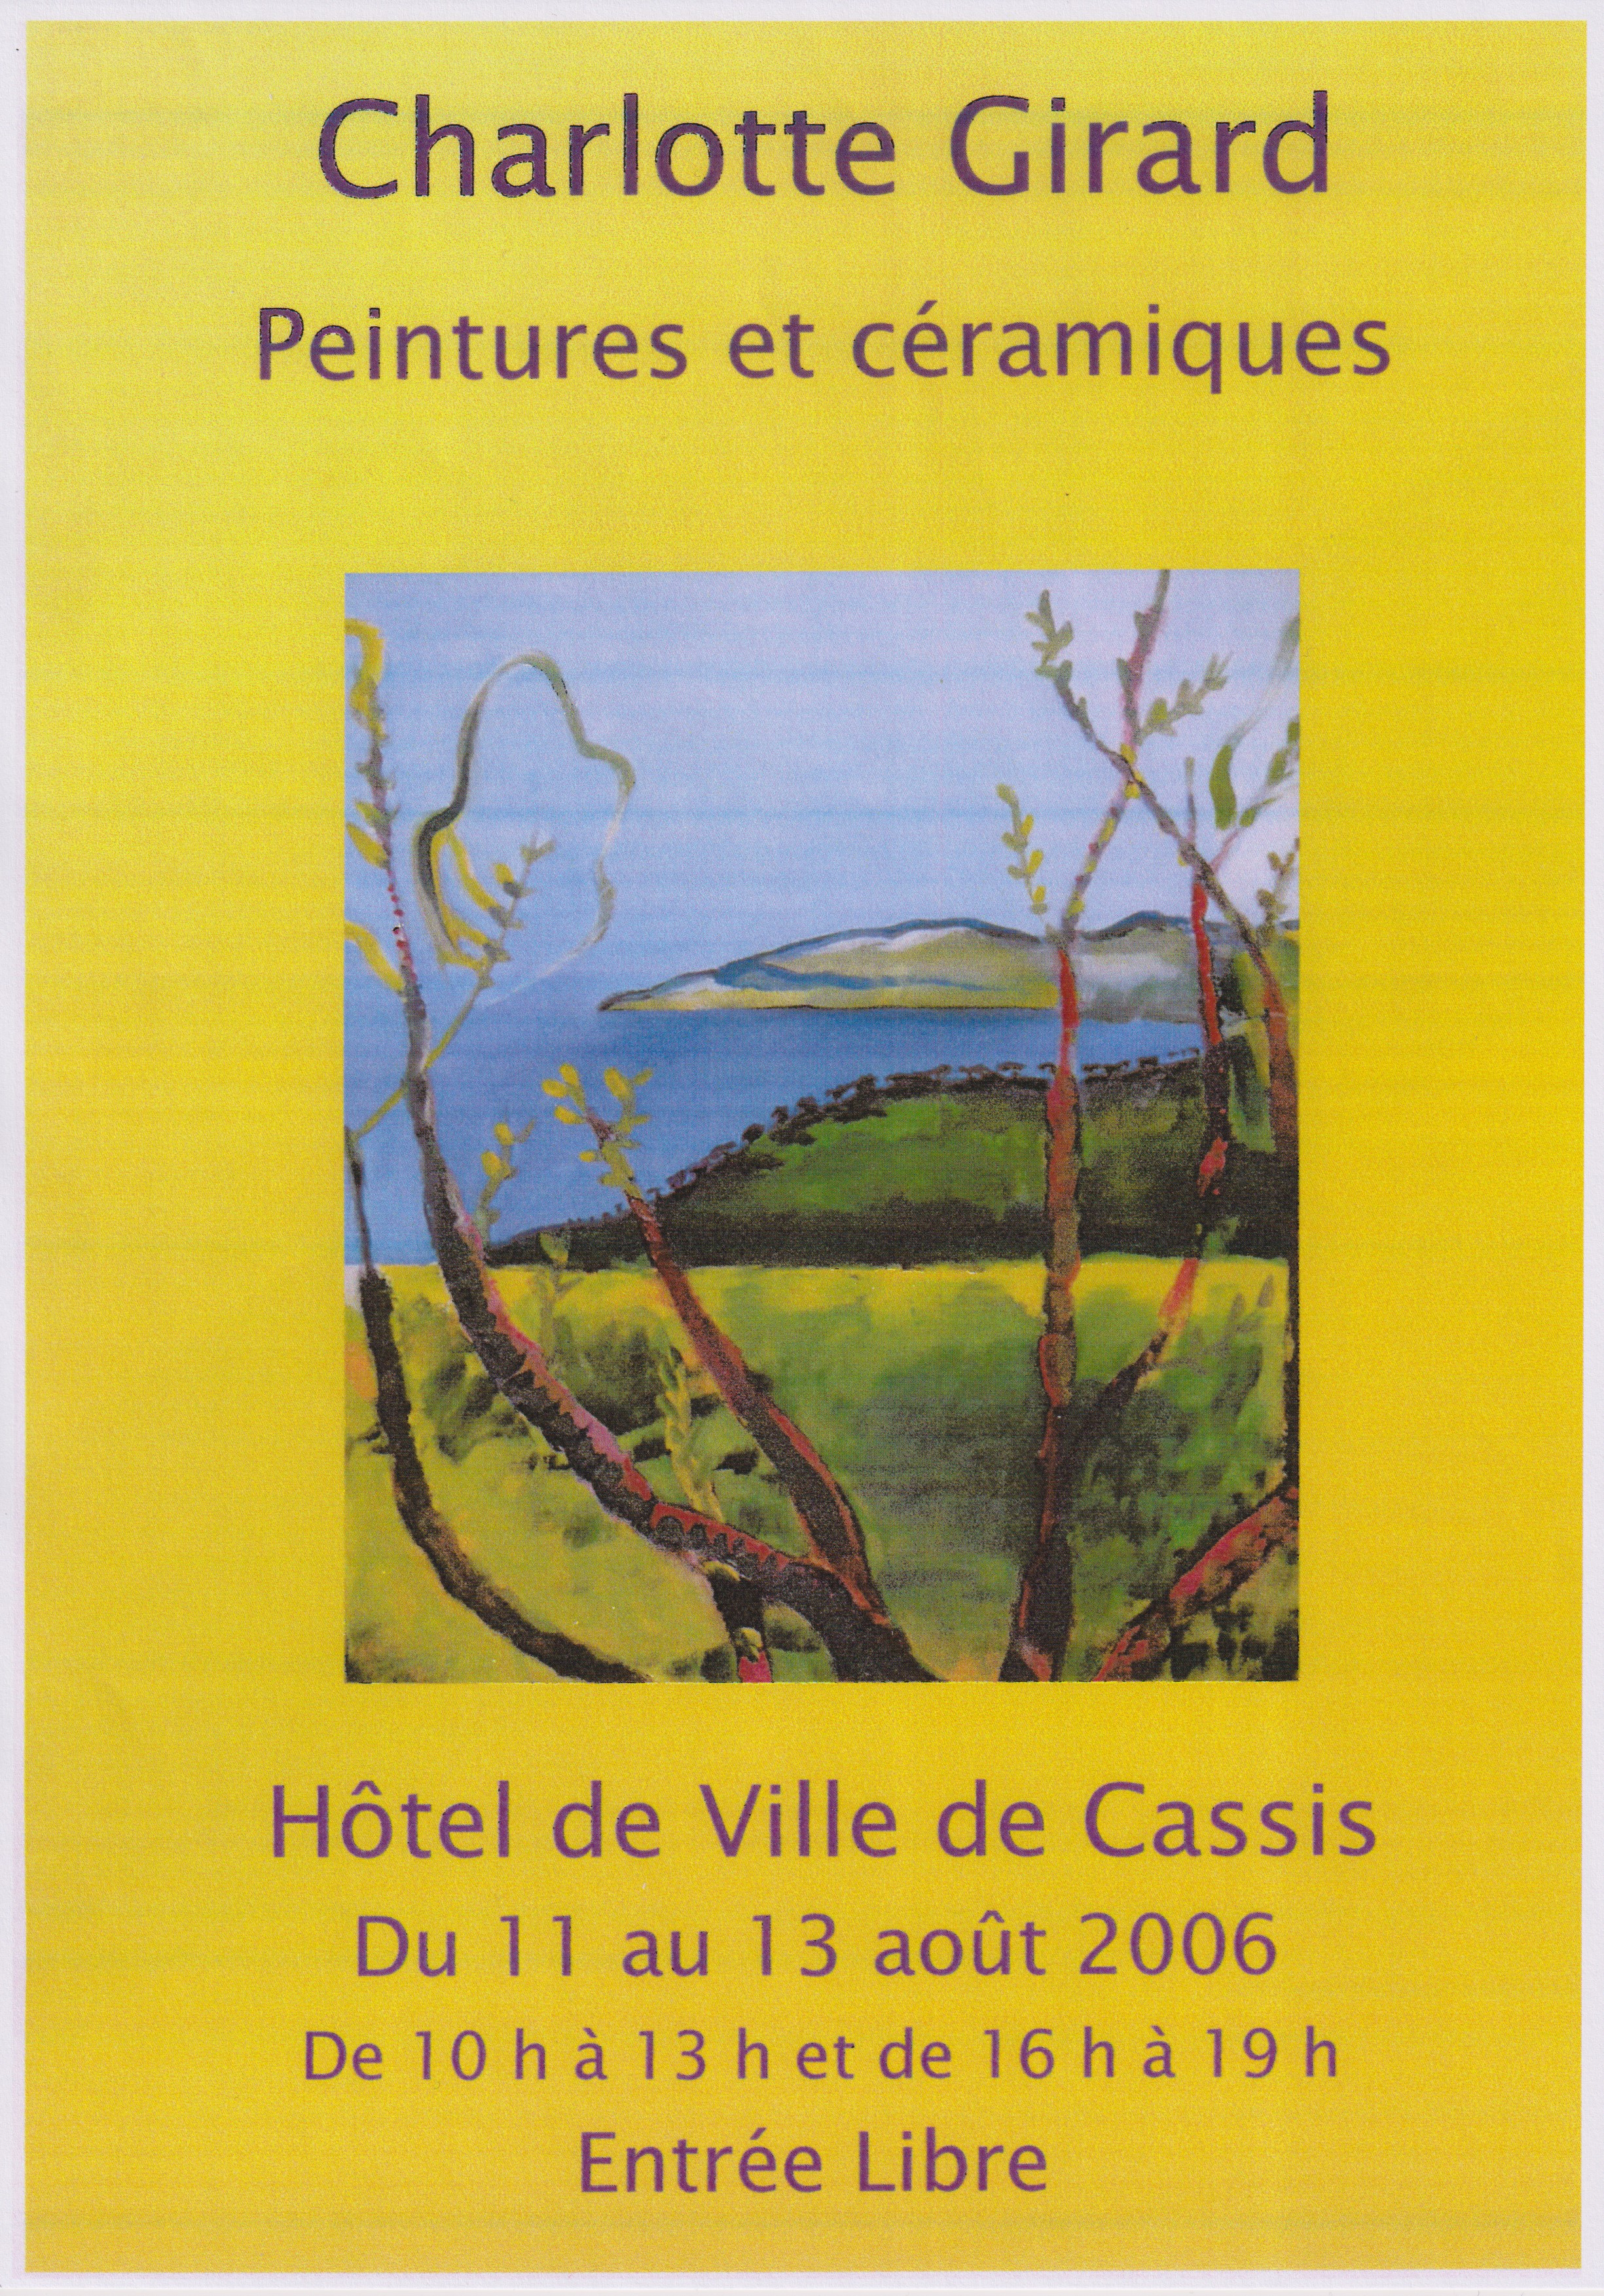 Expo Cassis